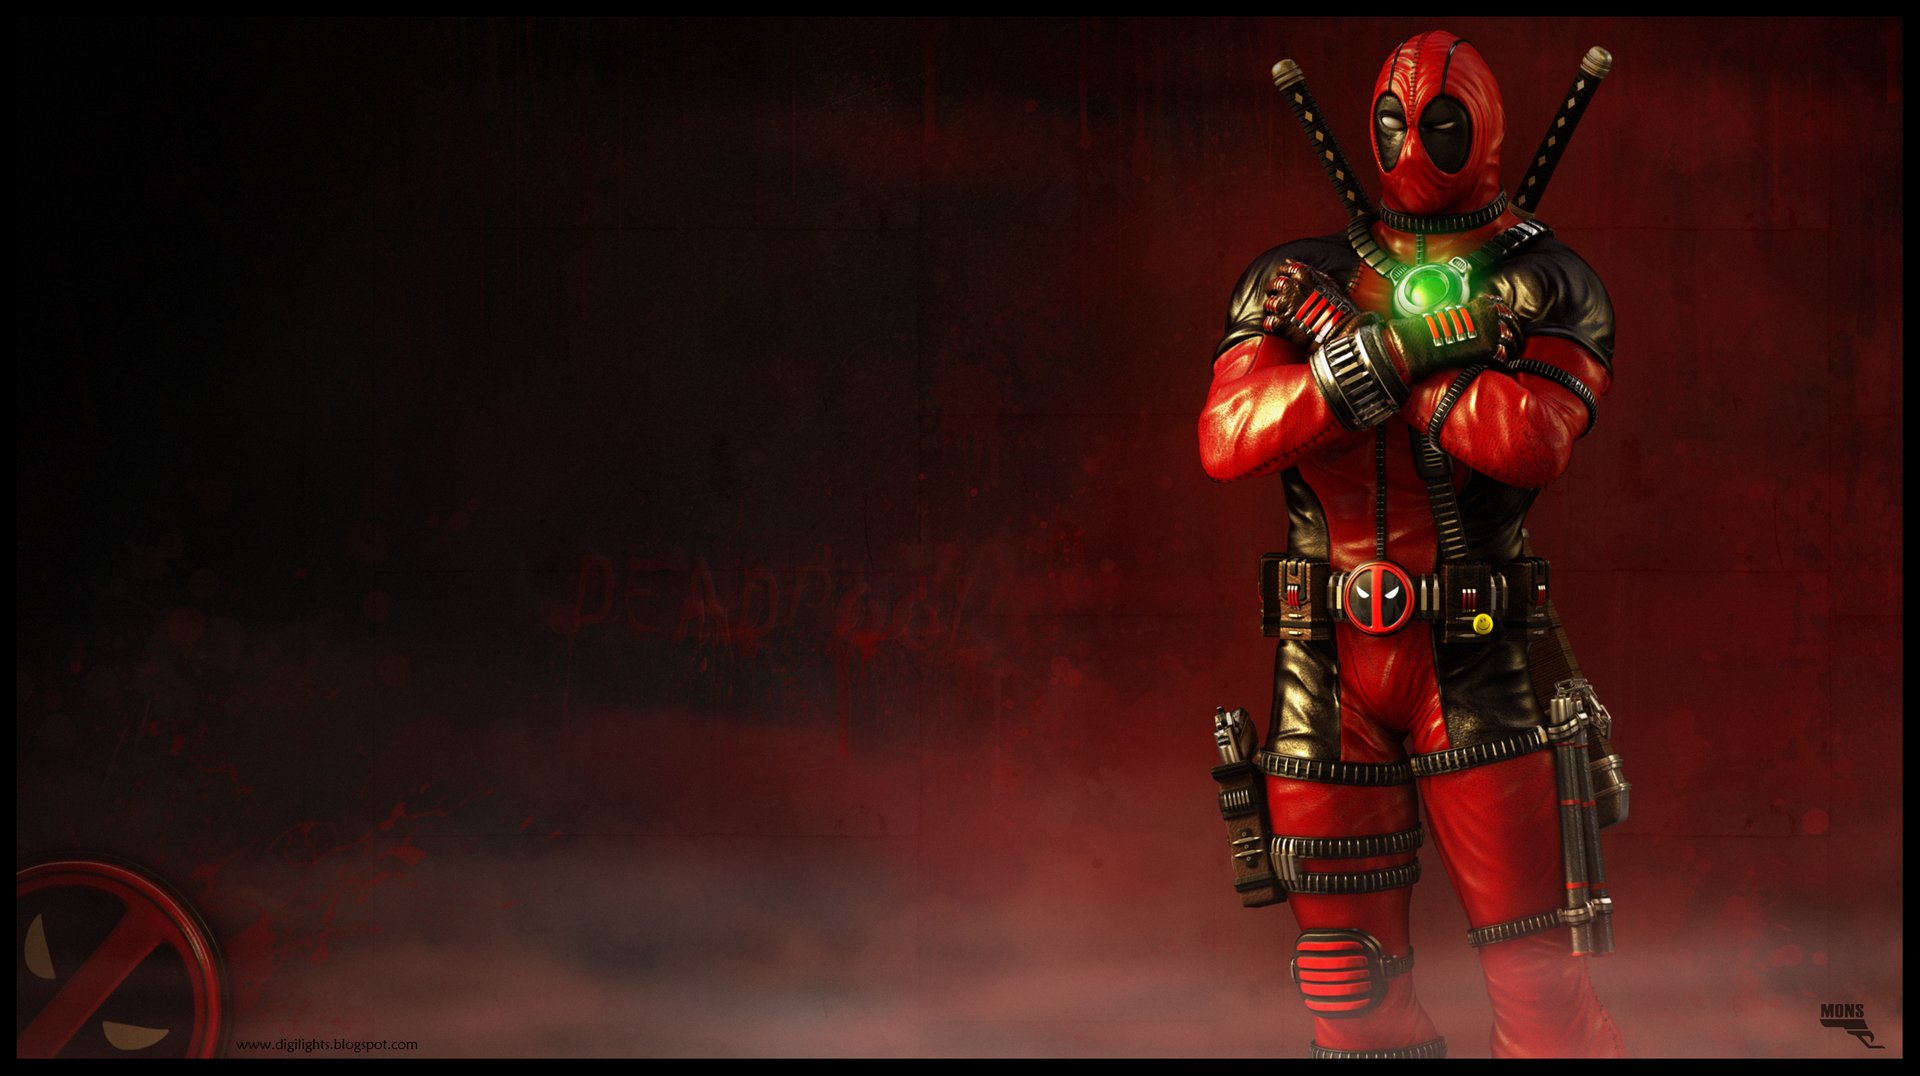 Marc mons deadpool 3d by marcmons007 d5ob5ey